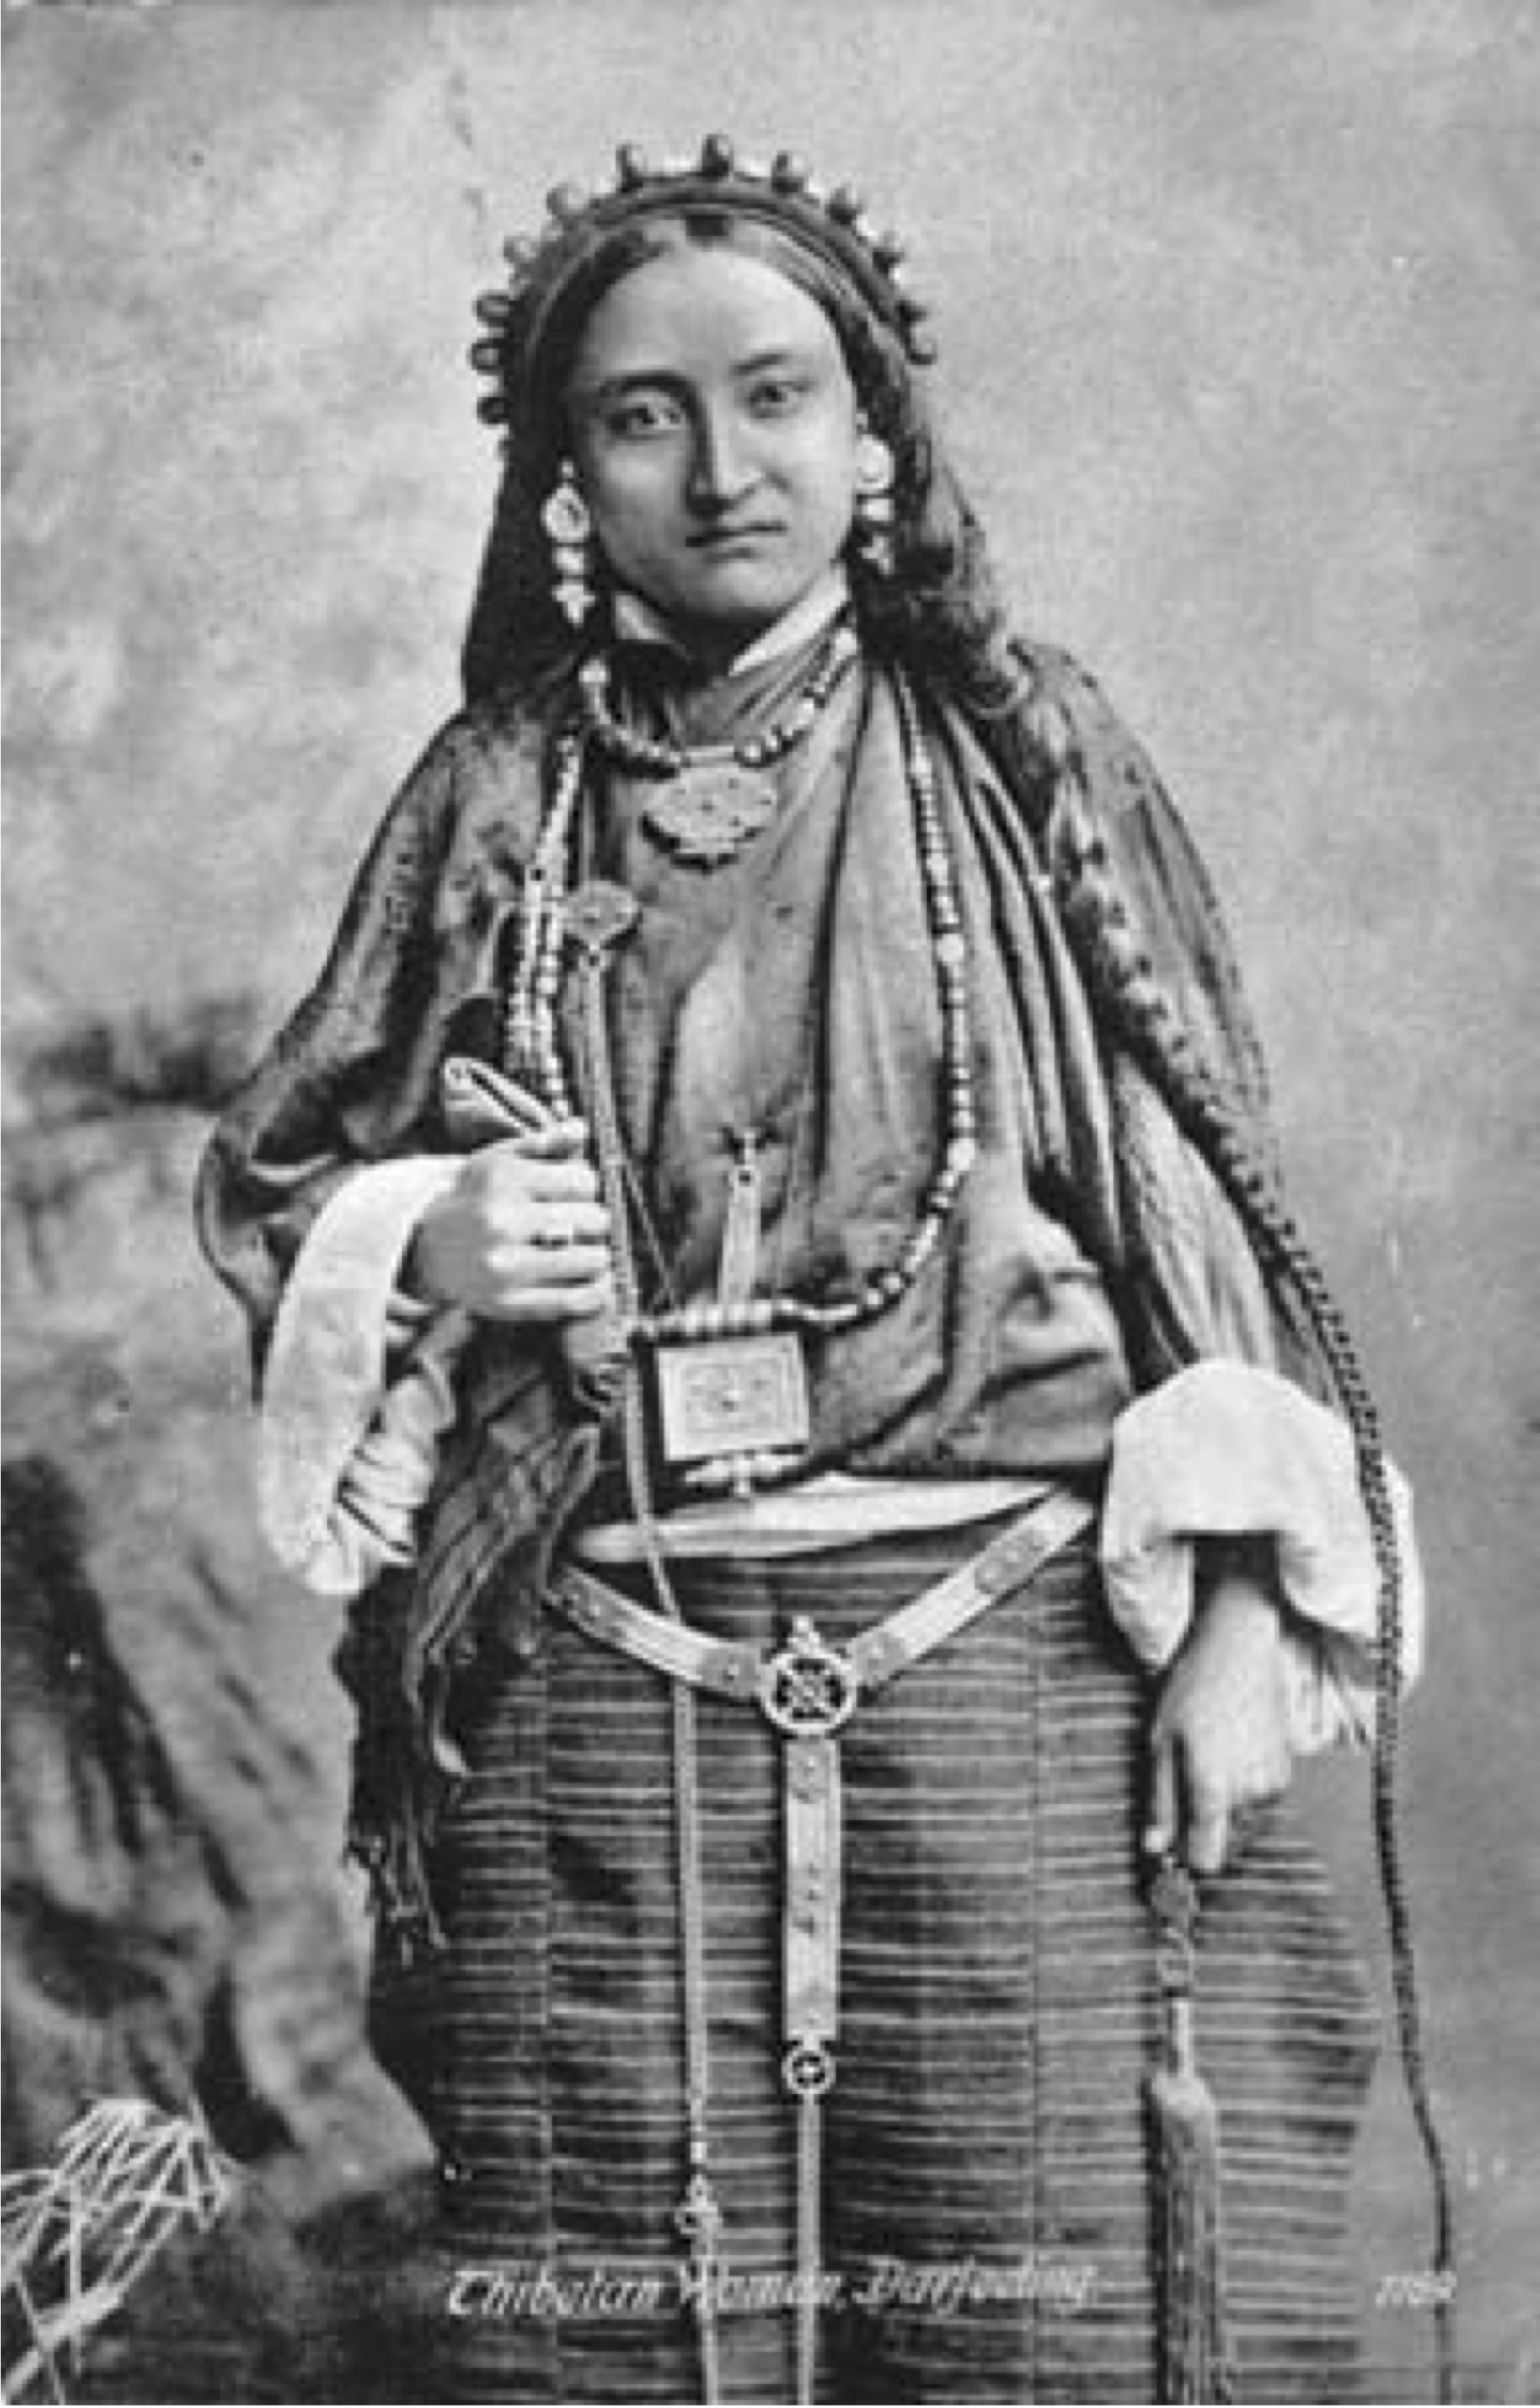 File:Postcard of portrait of 19 year old Tibetan woman in Lhasa-style dress  and amulet.jpg - Wikimedia Commons